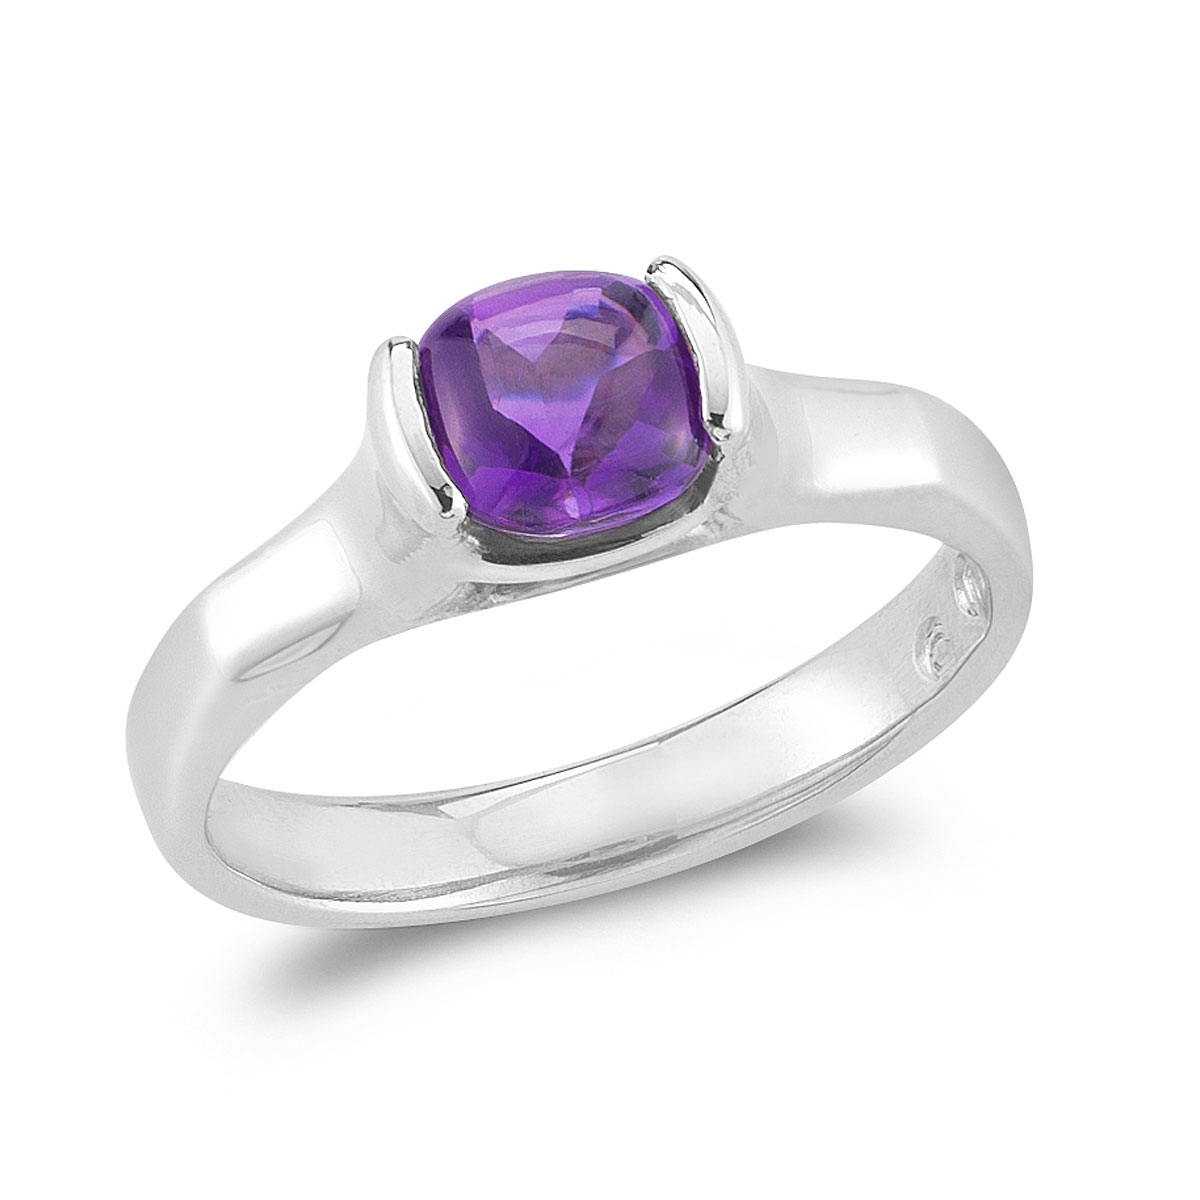 WR0172 Buff Top Gem Ring